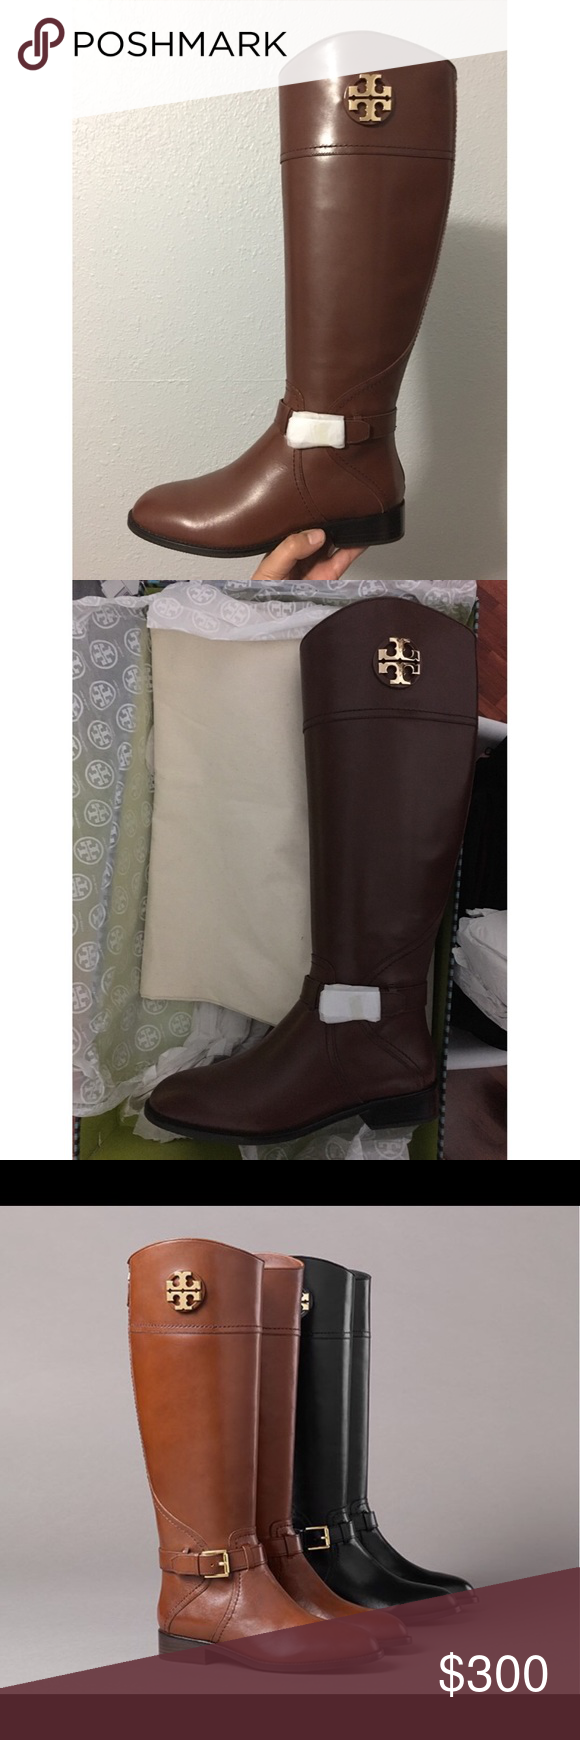 8cbd79c427c1 Tory Burch Adeline Boots Tory Burch Adeline Boots Almond Size 9 wide calf  Brand new   Never Been Used Remains in original packaging Tory Burch Shoes  Winter ...